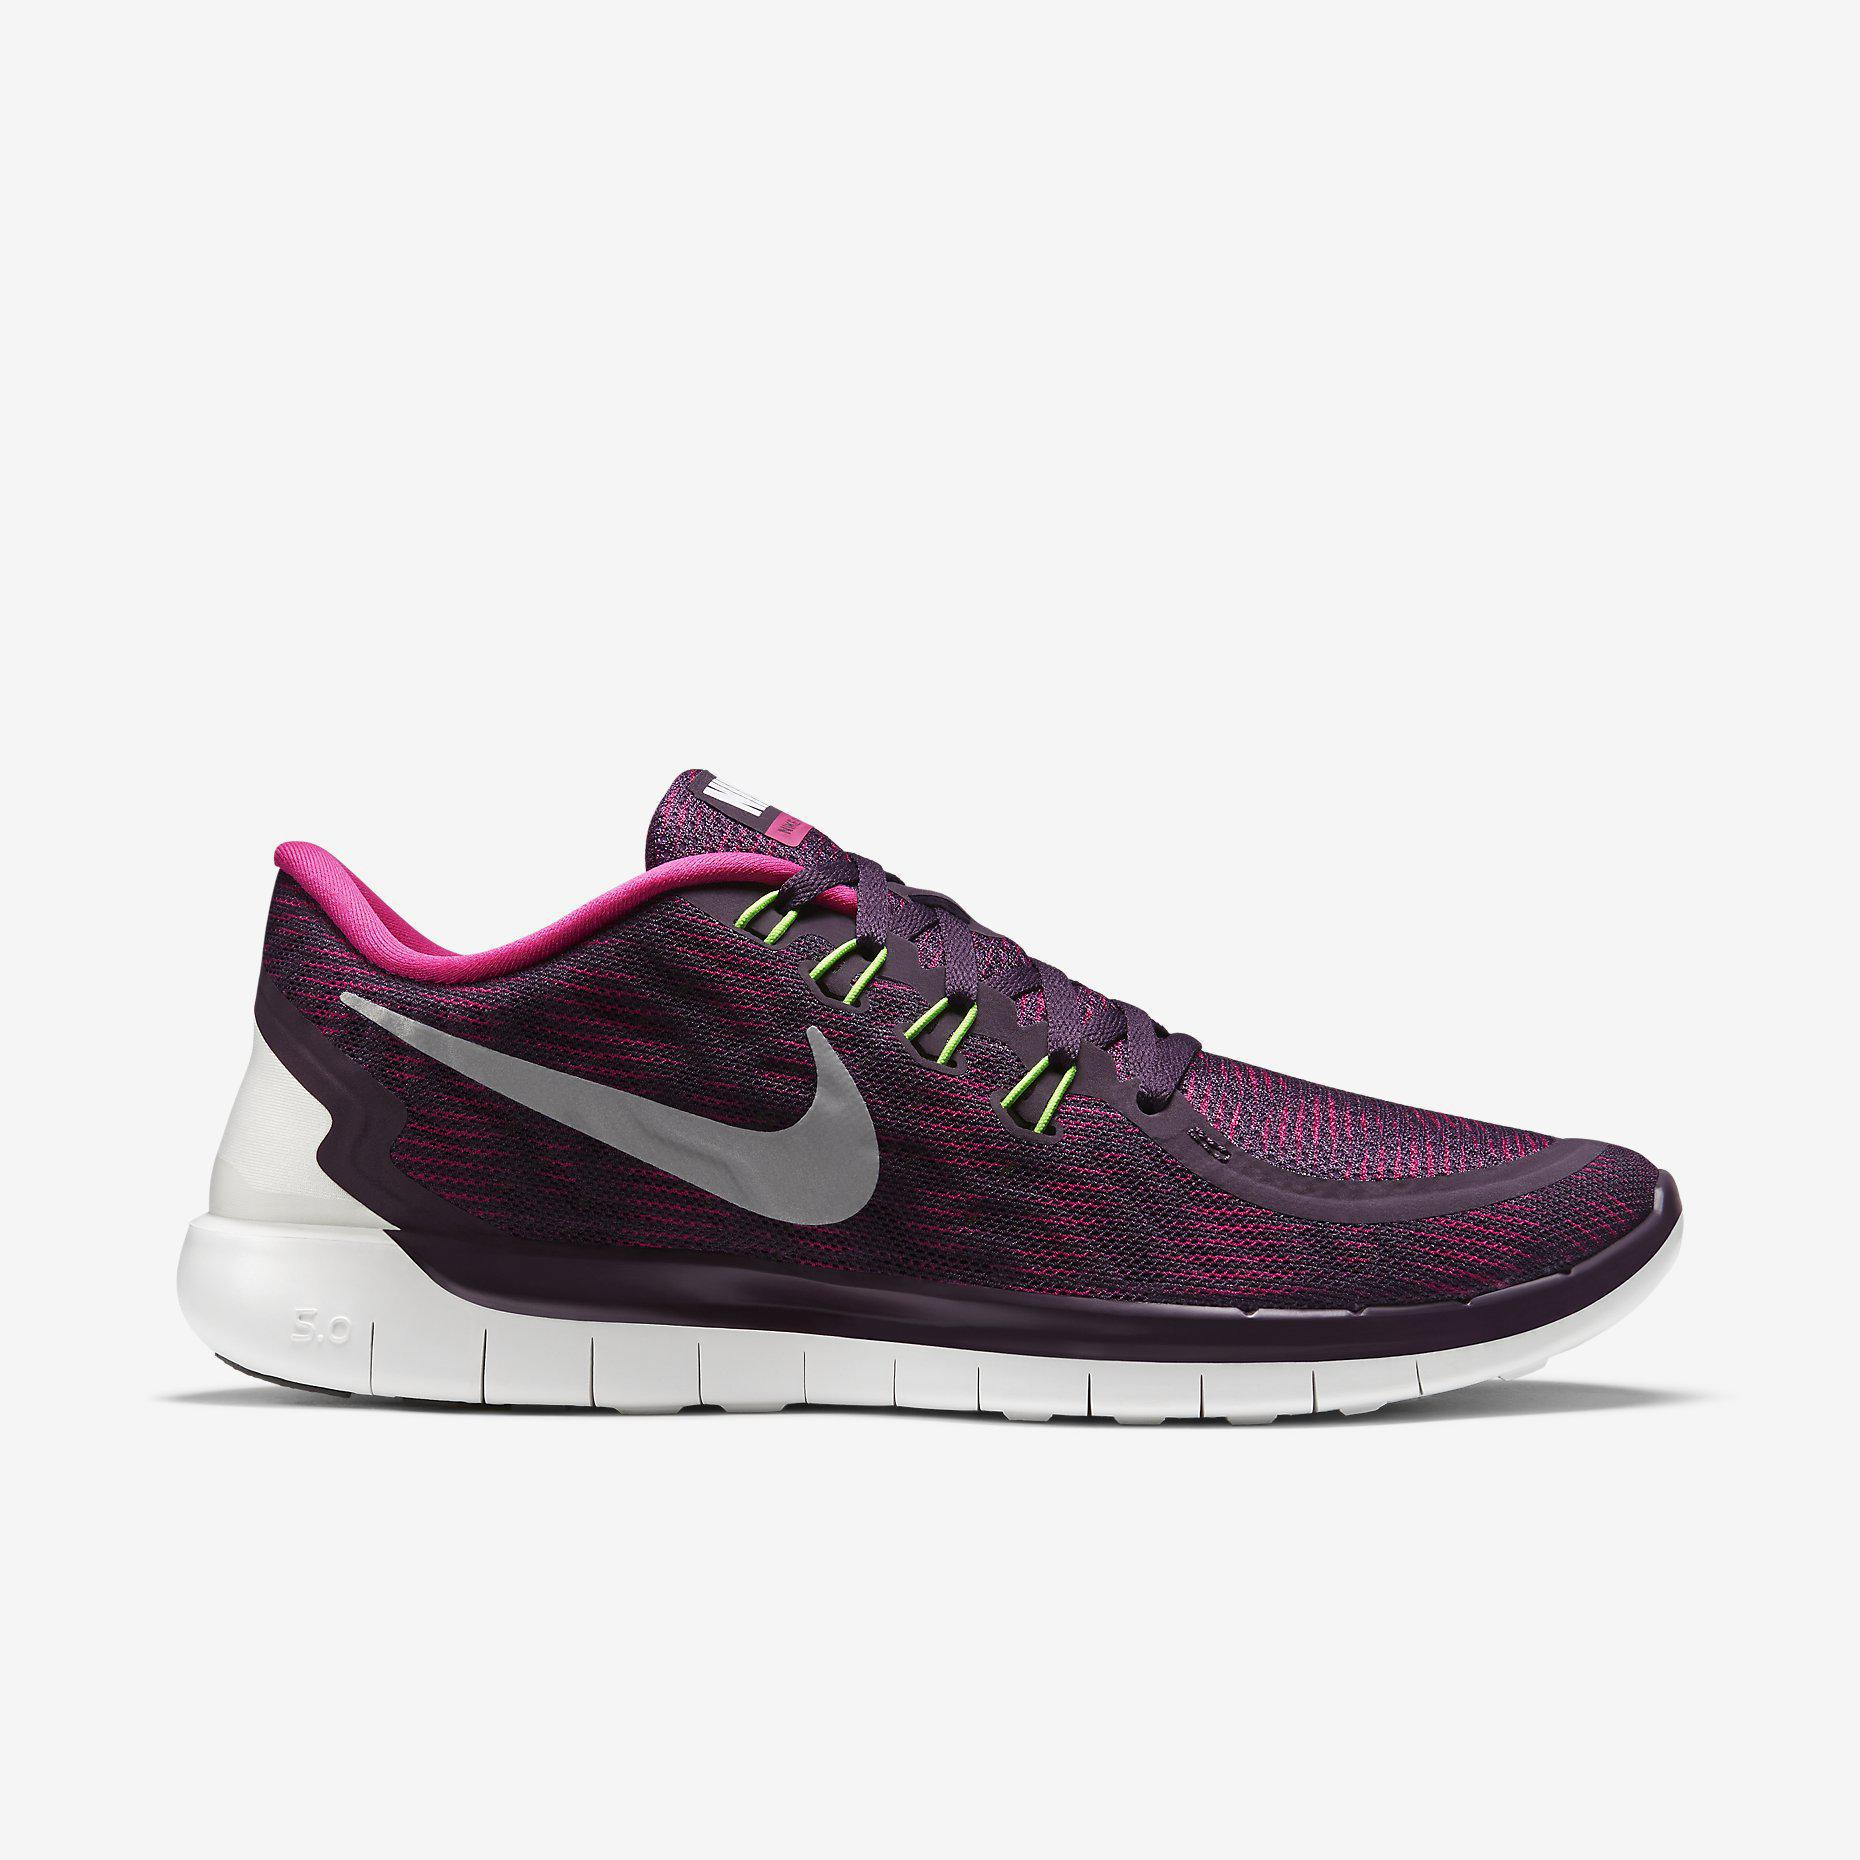 lowest price 68121 accbd Nike Womens Free 5.0+ Print Running Shoes - Purple Pink - Tennisnuts.com